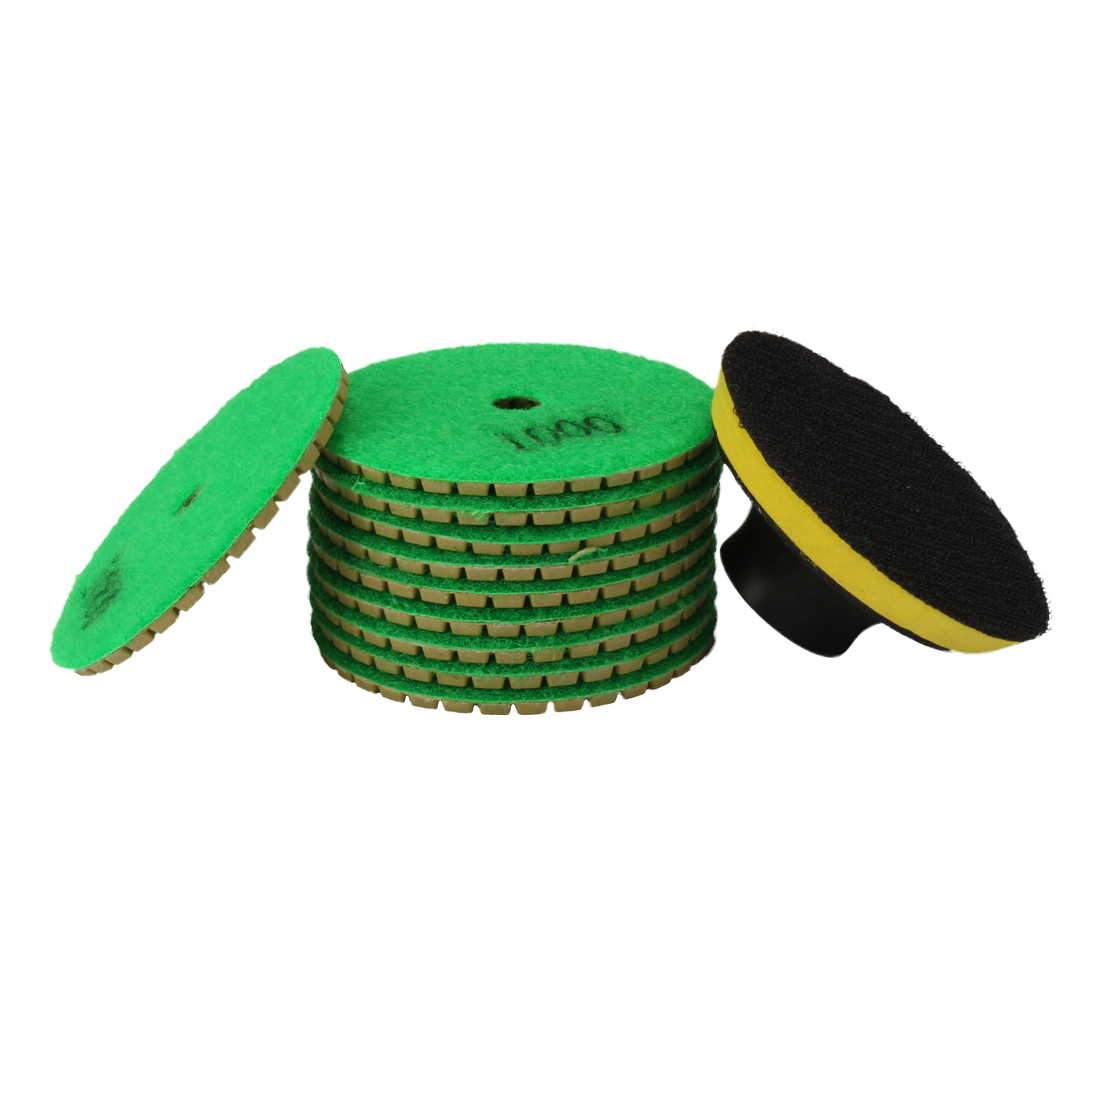 3-inch Diamond Wet Polishing Pad Disc Grit 1000 10pcs for Granite Concrete Stone